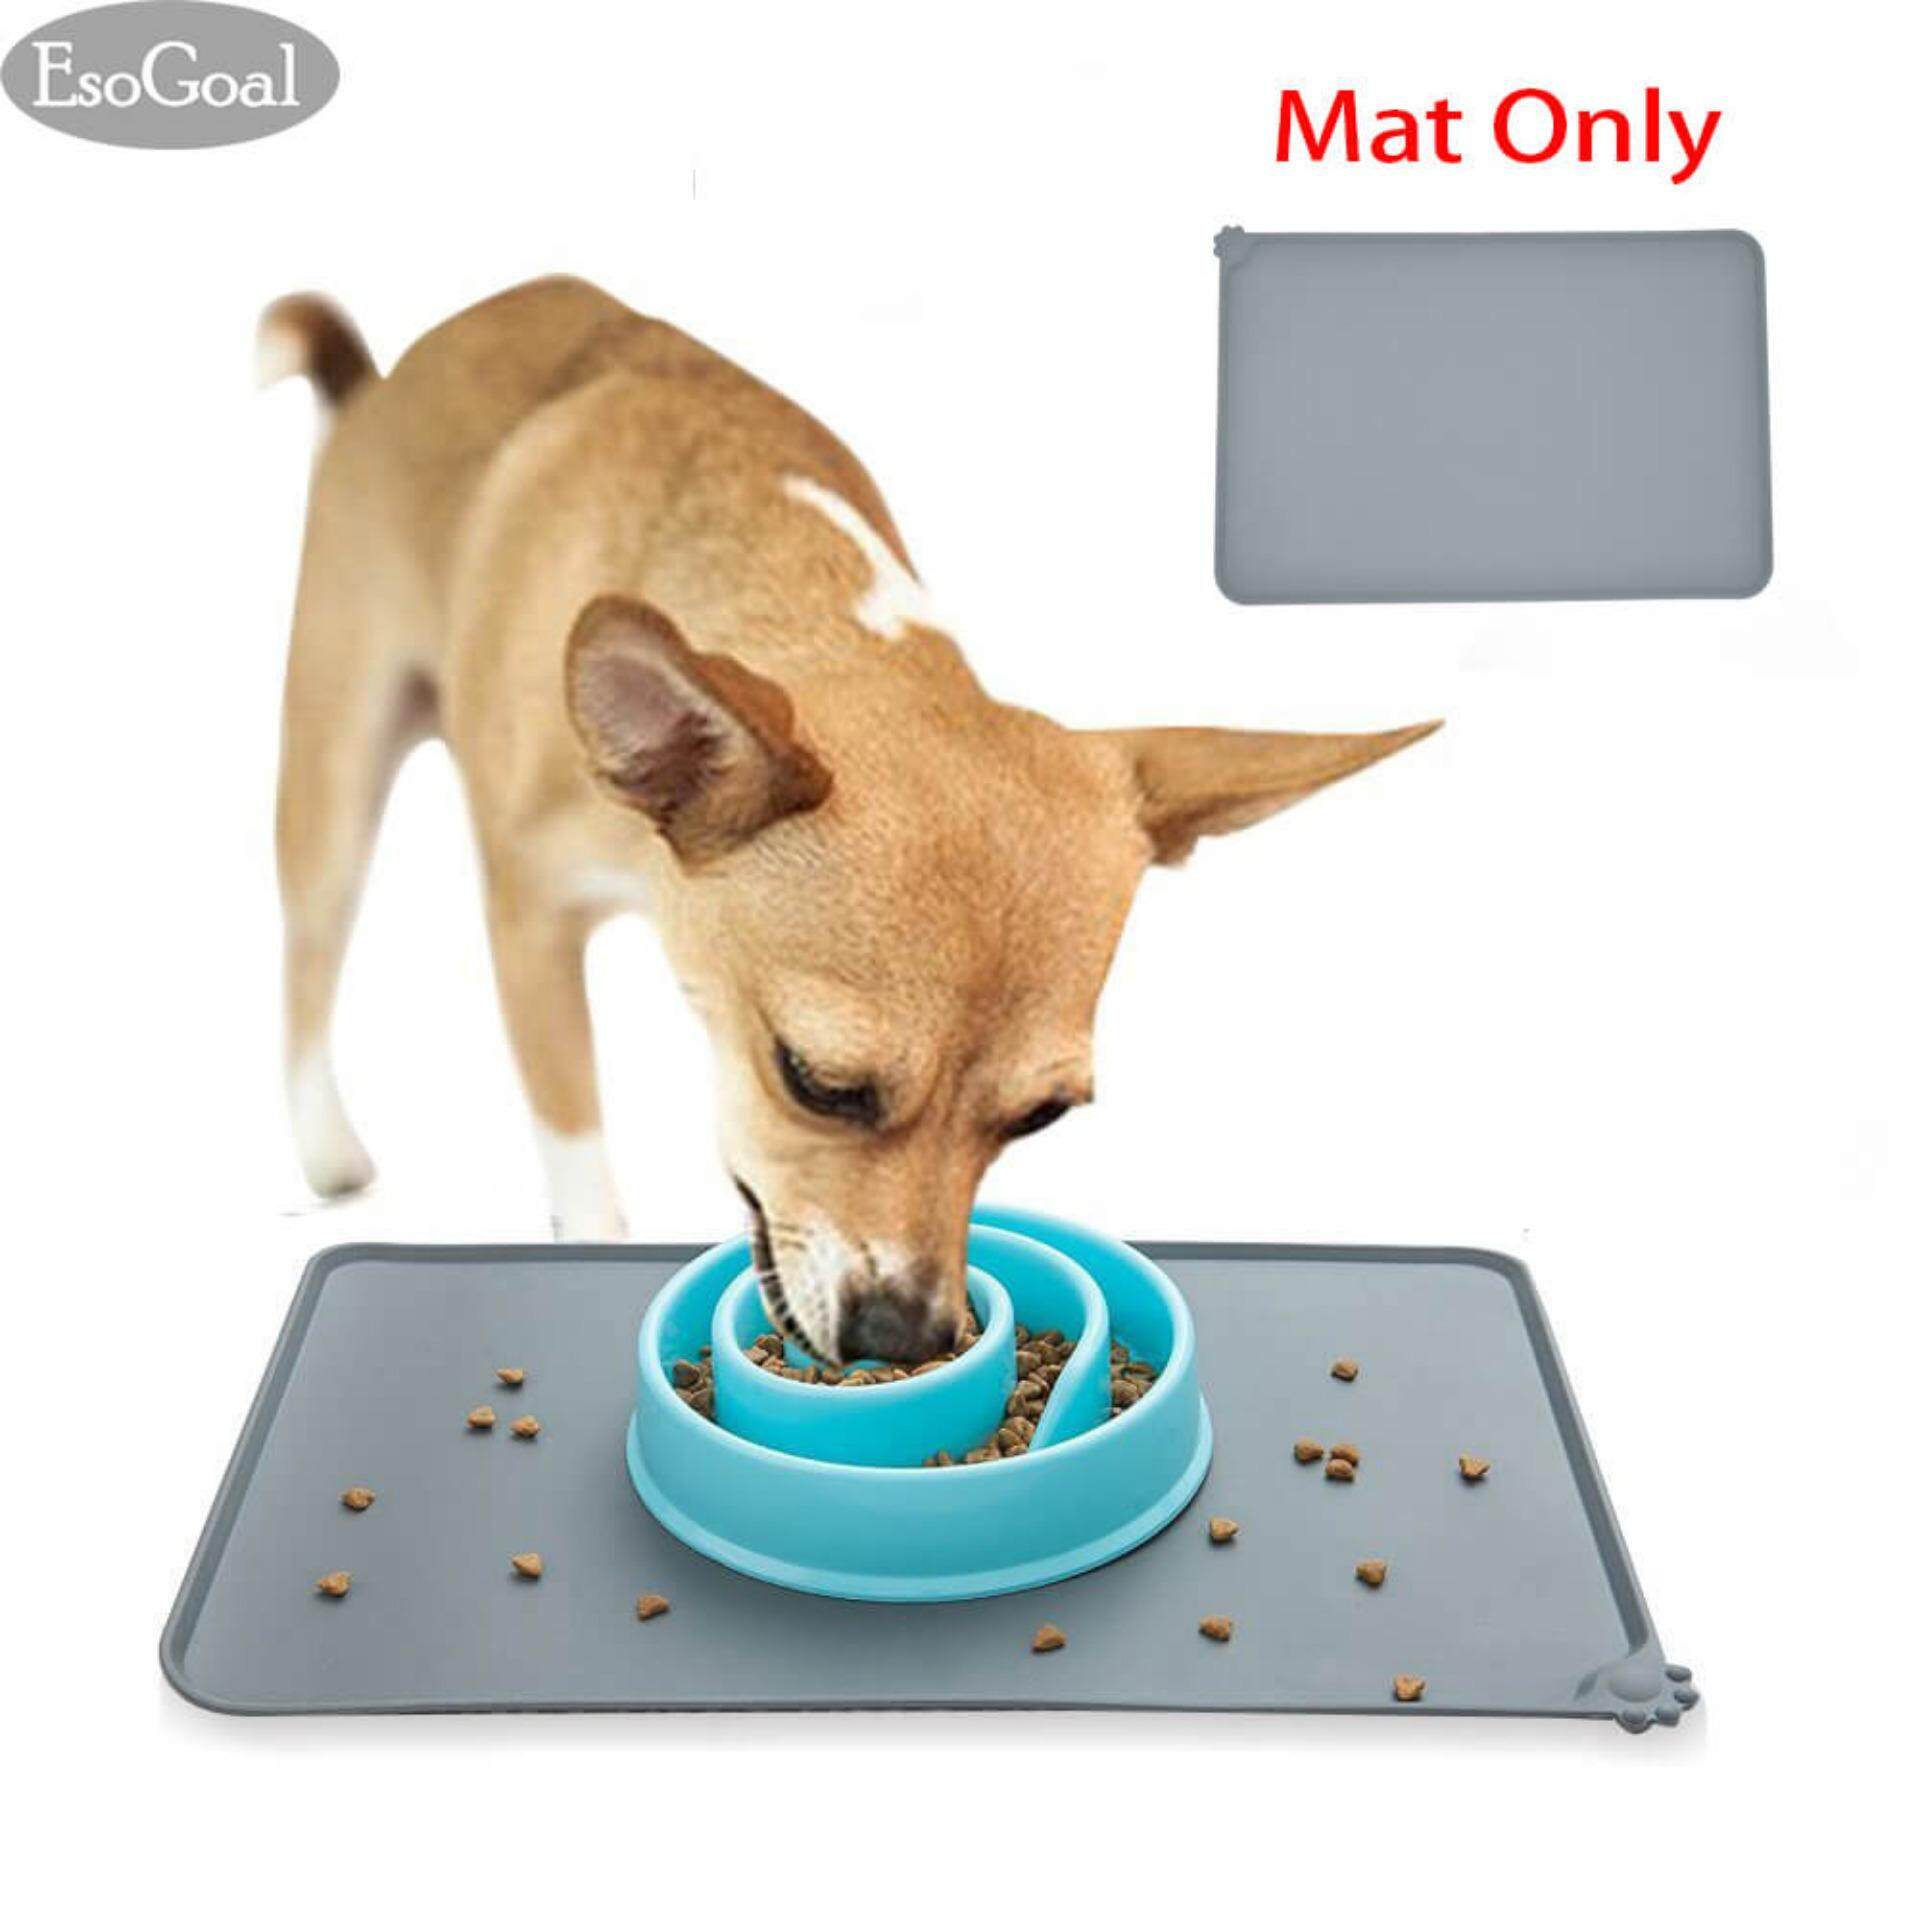 slip tray malaysia pet food non bowl mats and mat waterproof silicone dogs eating esogoal cats for feeding